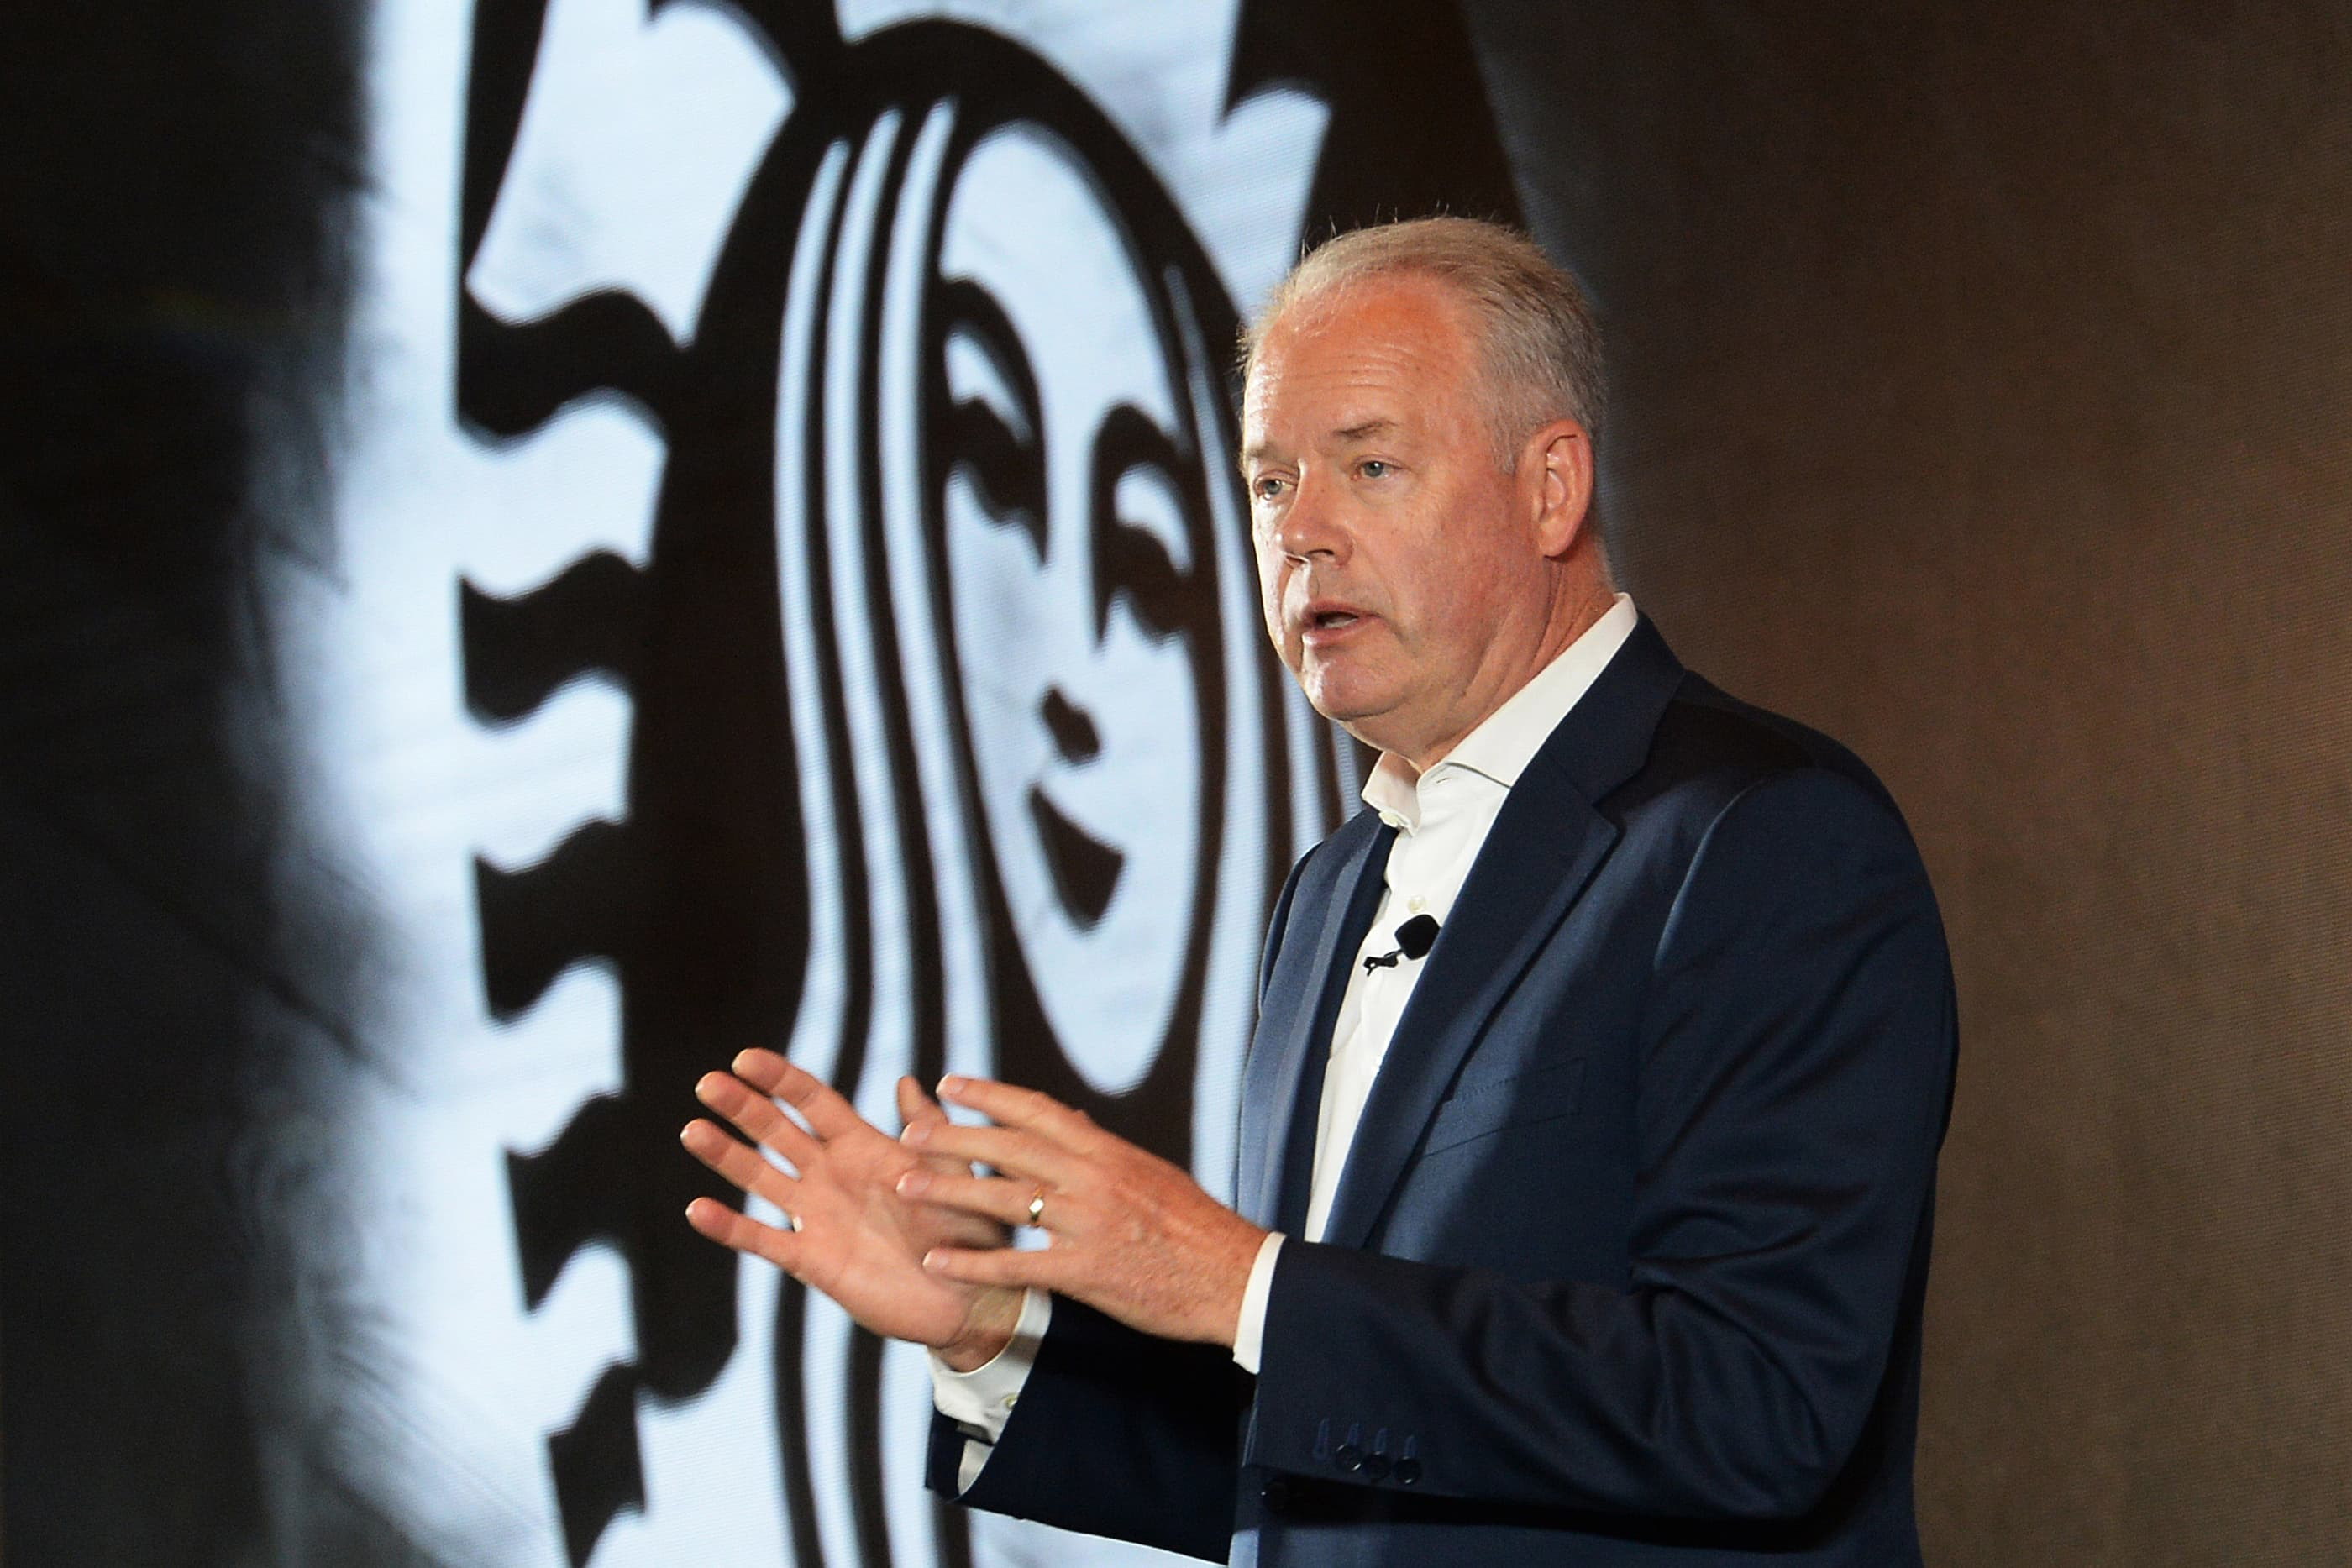 Starbucks CEO says US experiencing 'similar' coronavirus path to China